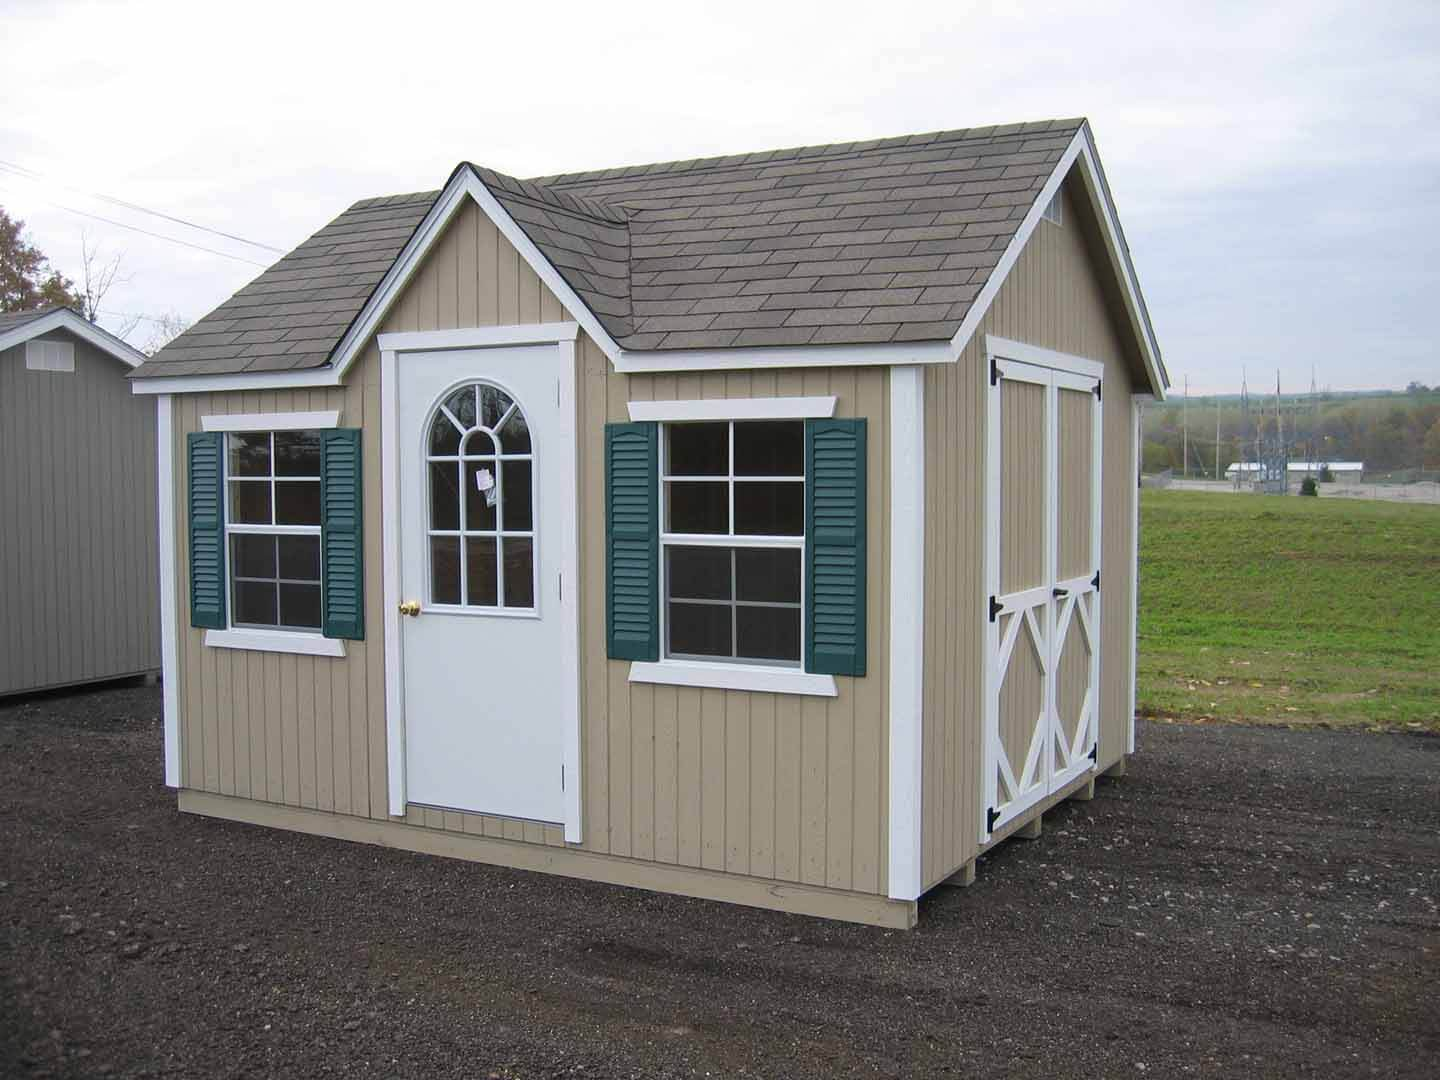 Classic Wood Cottage storage shed kit